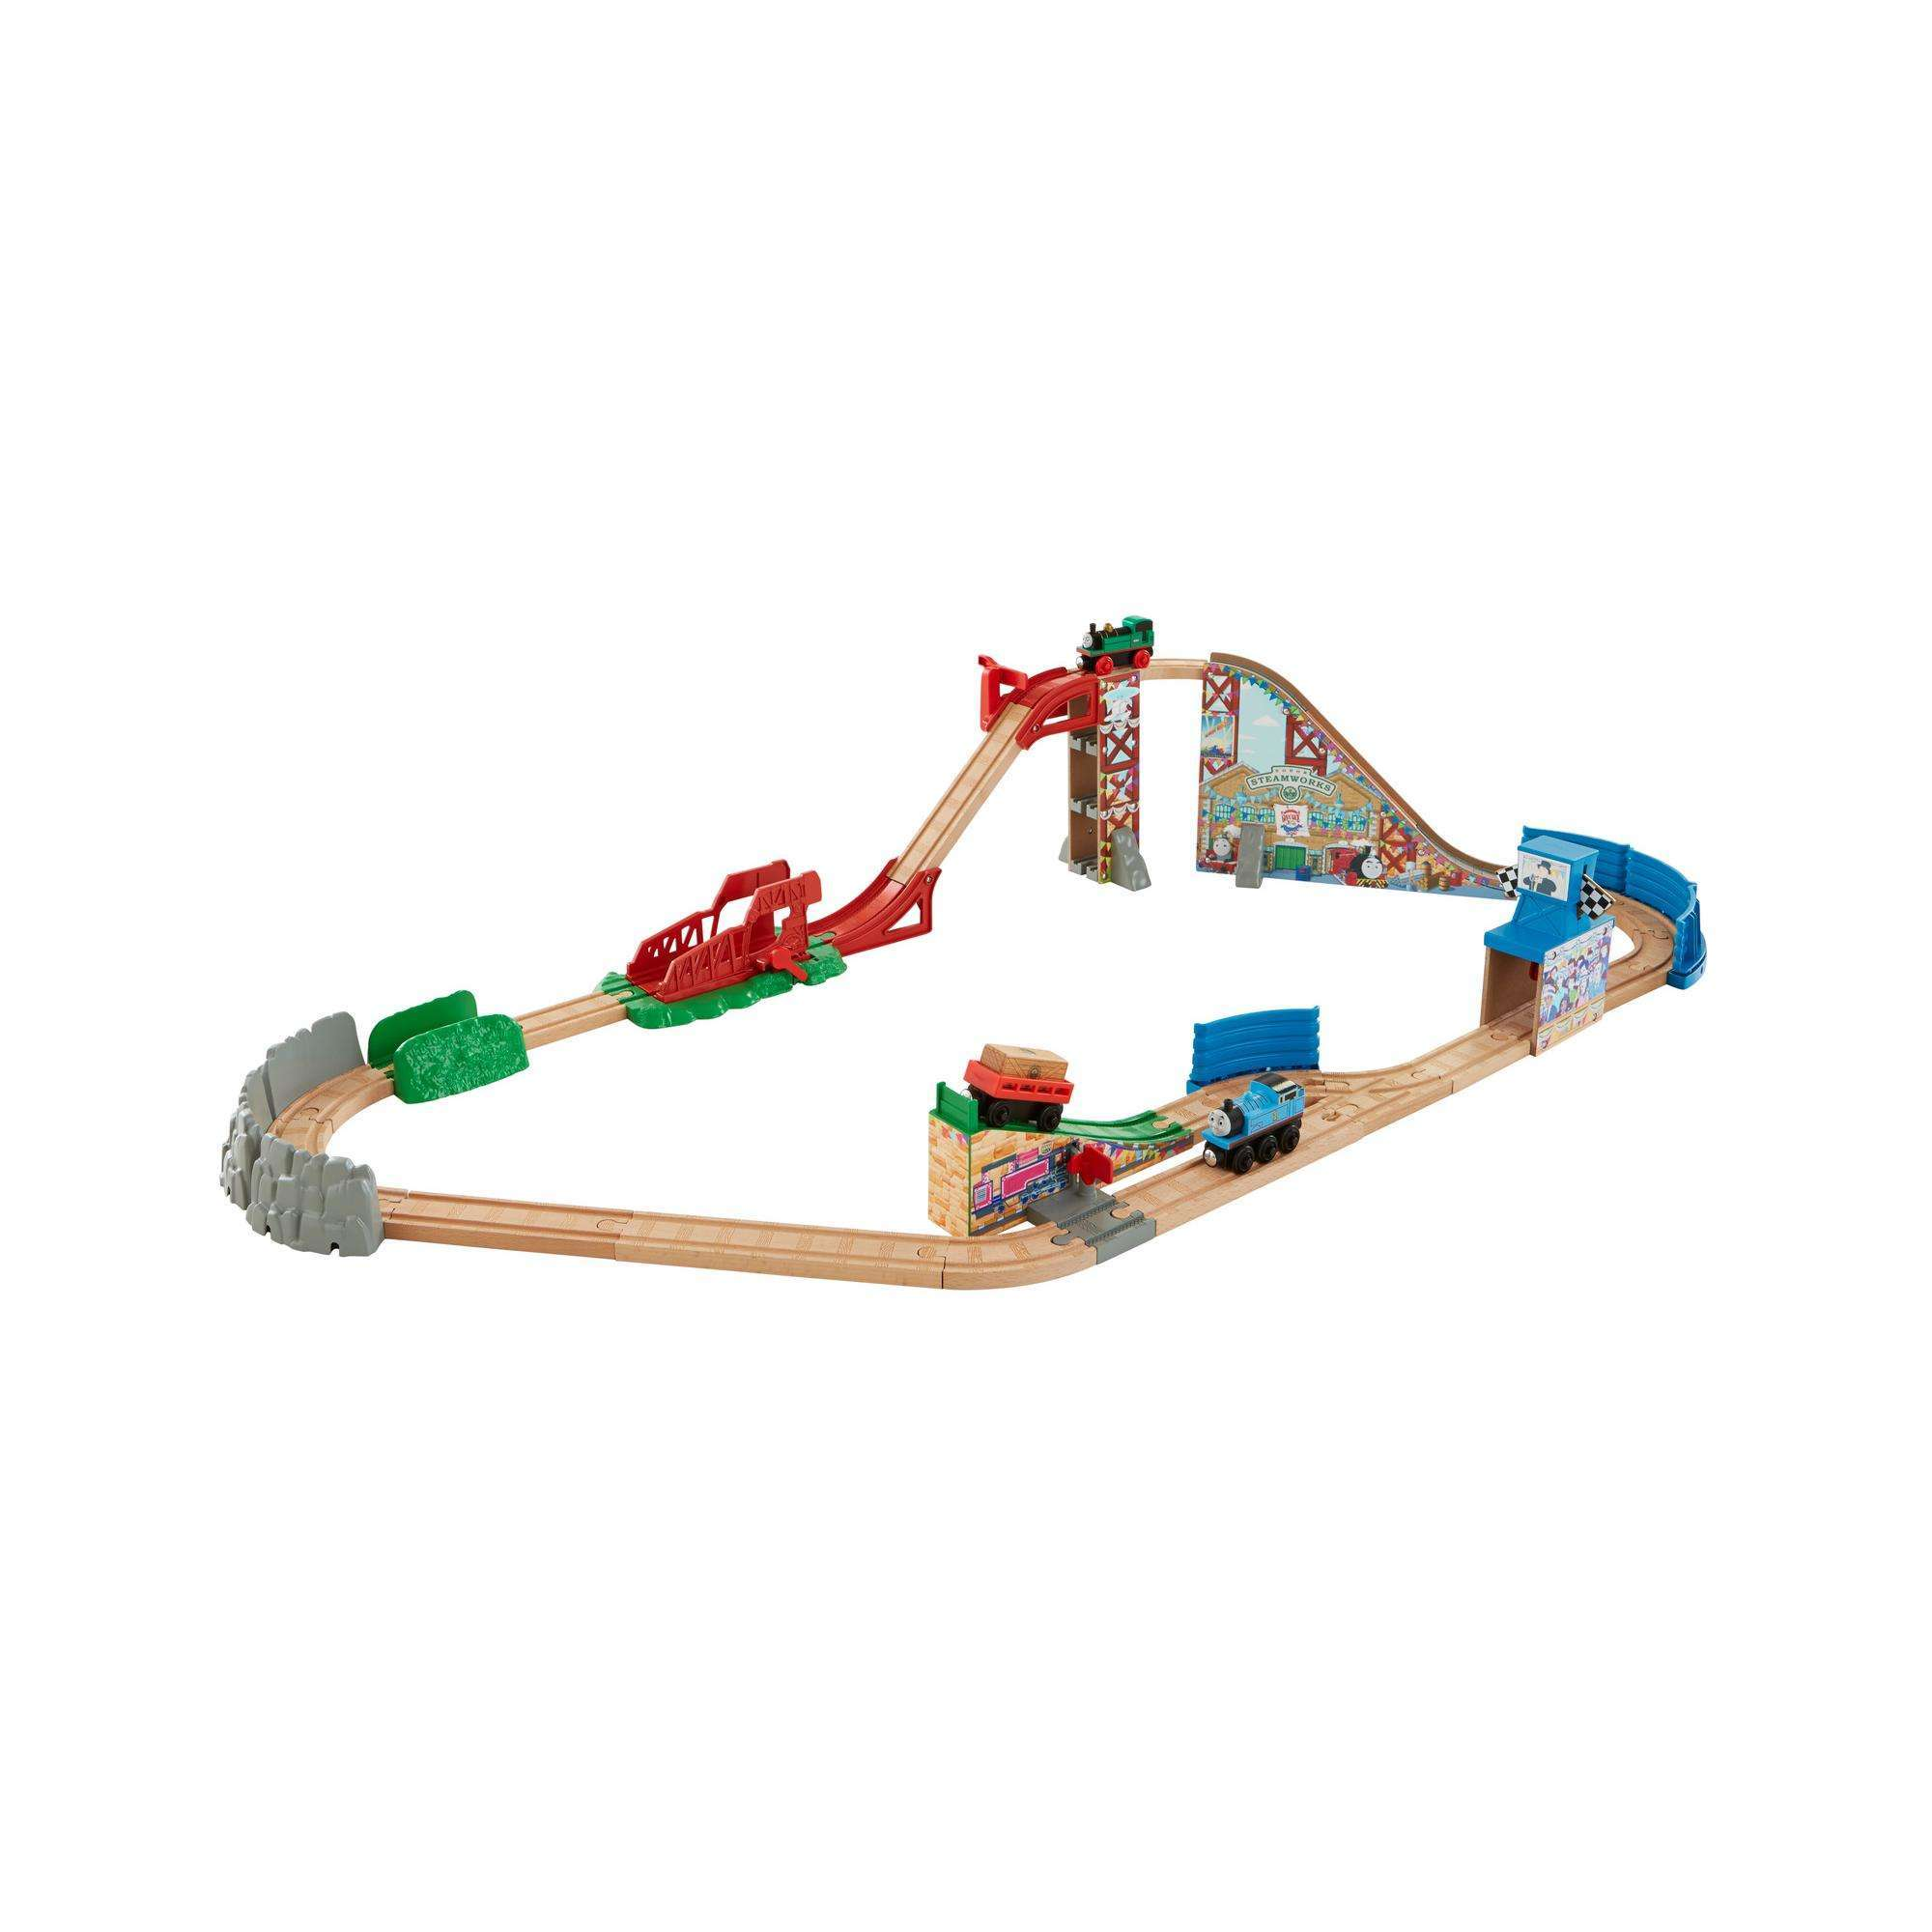 Fisher Price Thomas the Train Wooden Railway Race Day Relay Set by Mattel